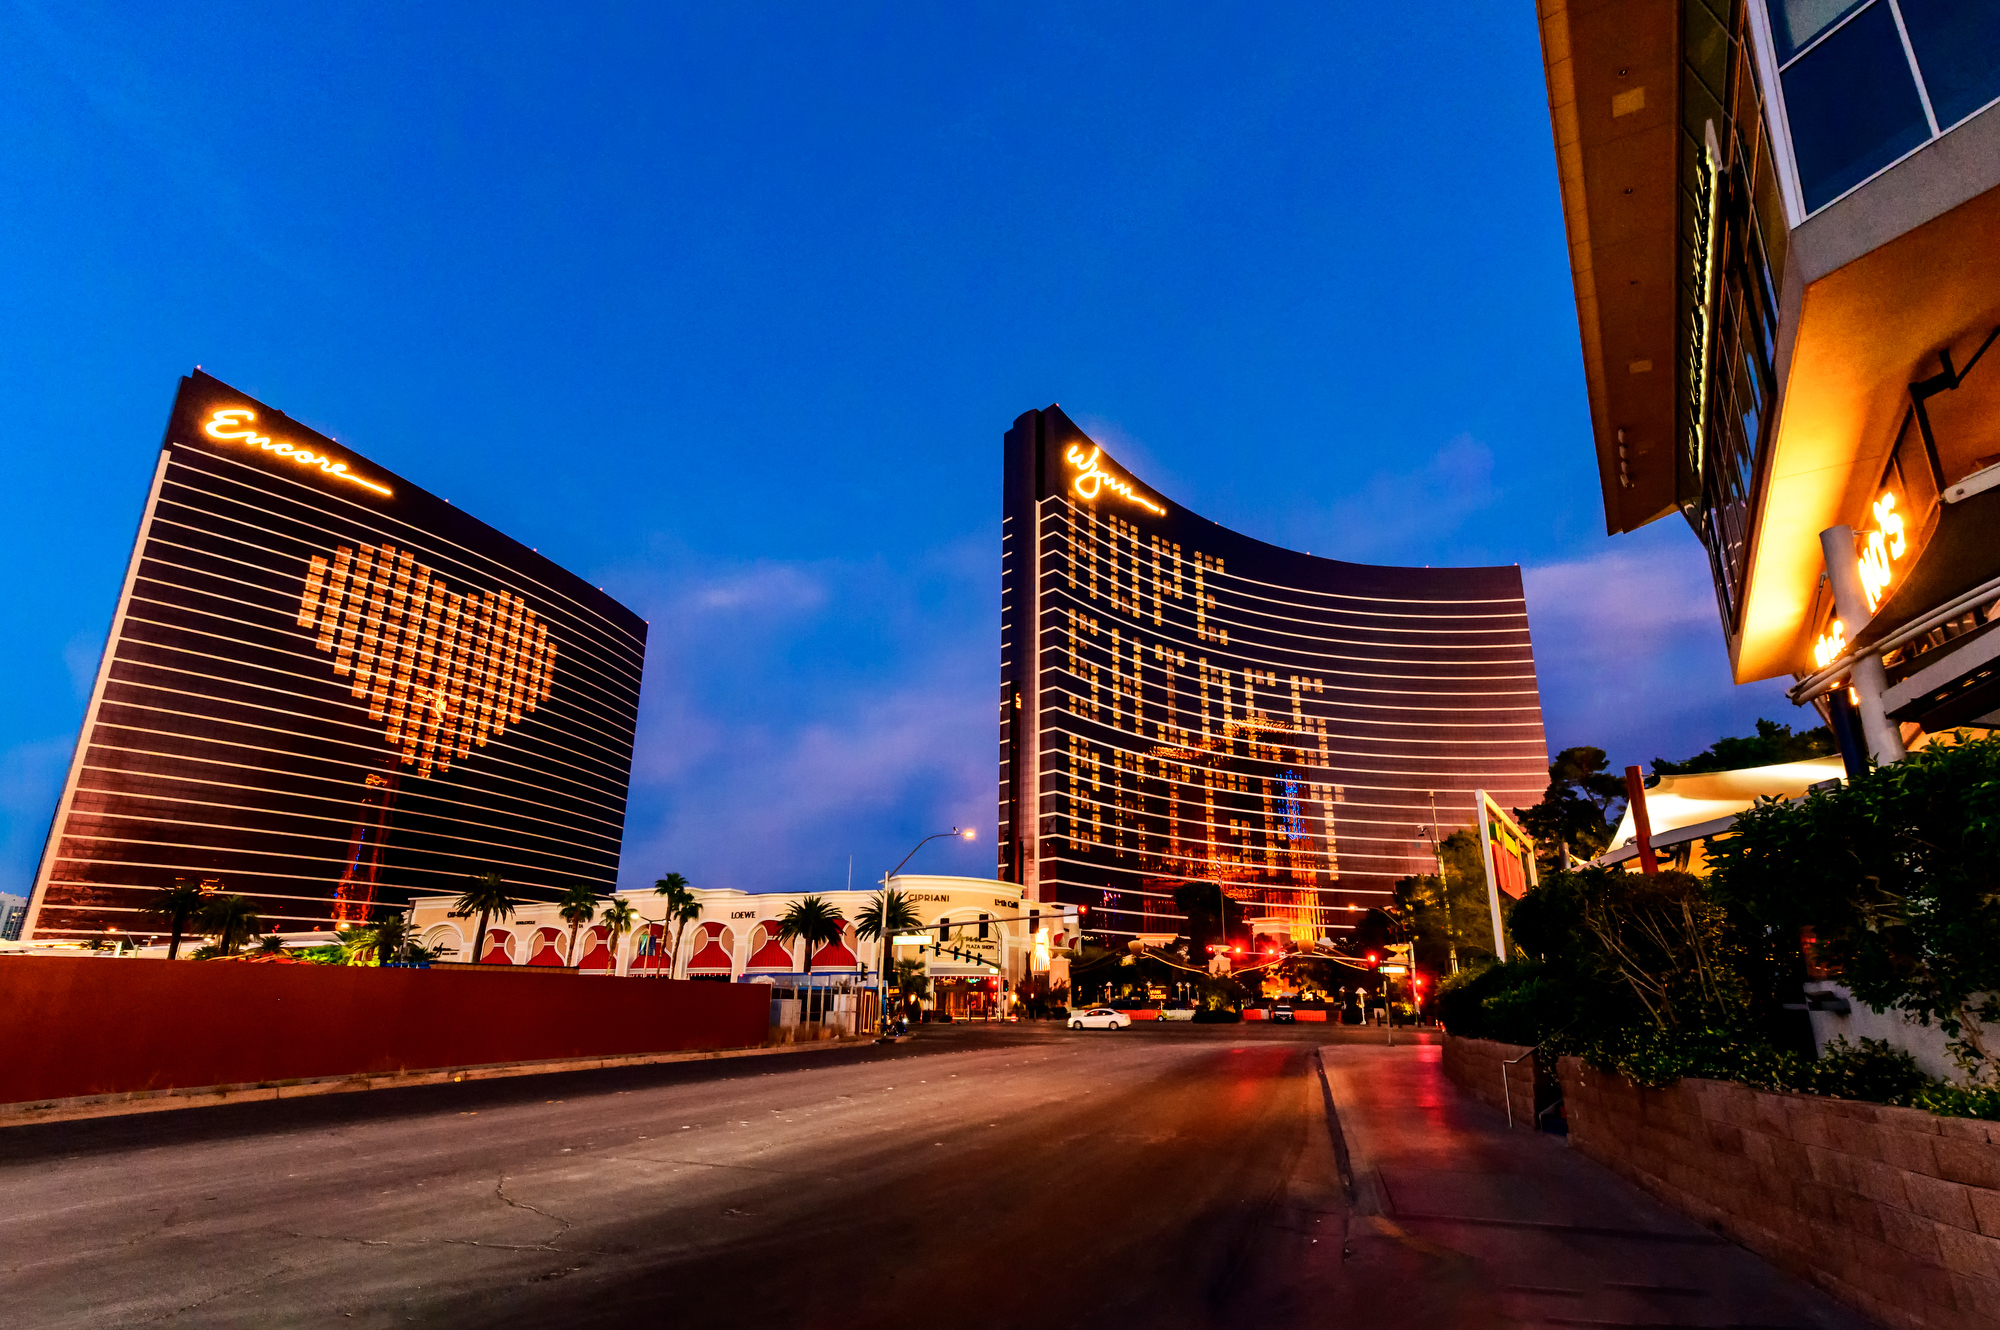 Two casinos with hearts in lights